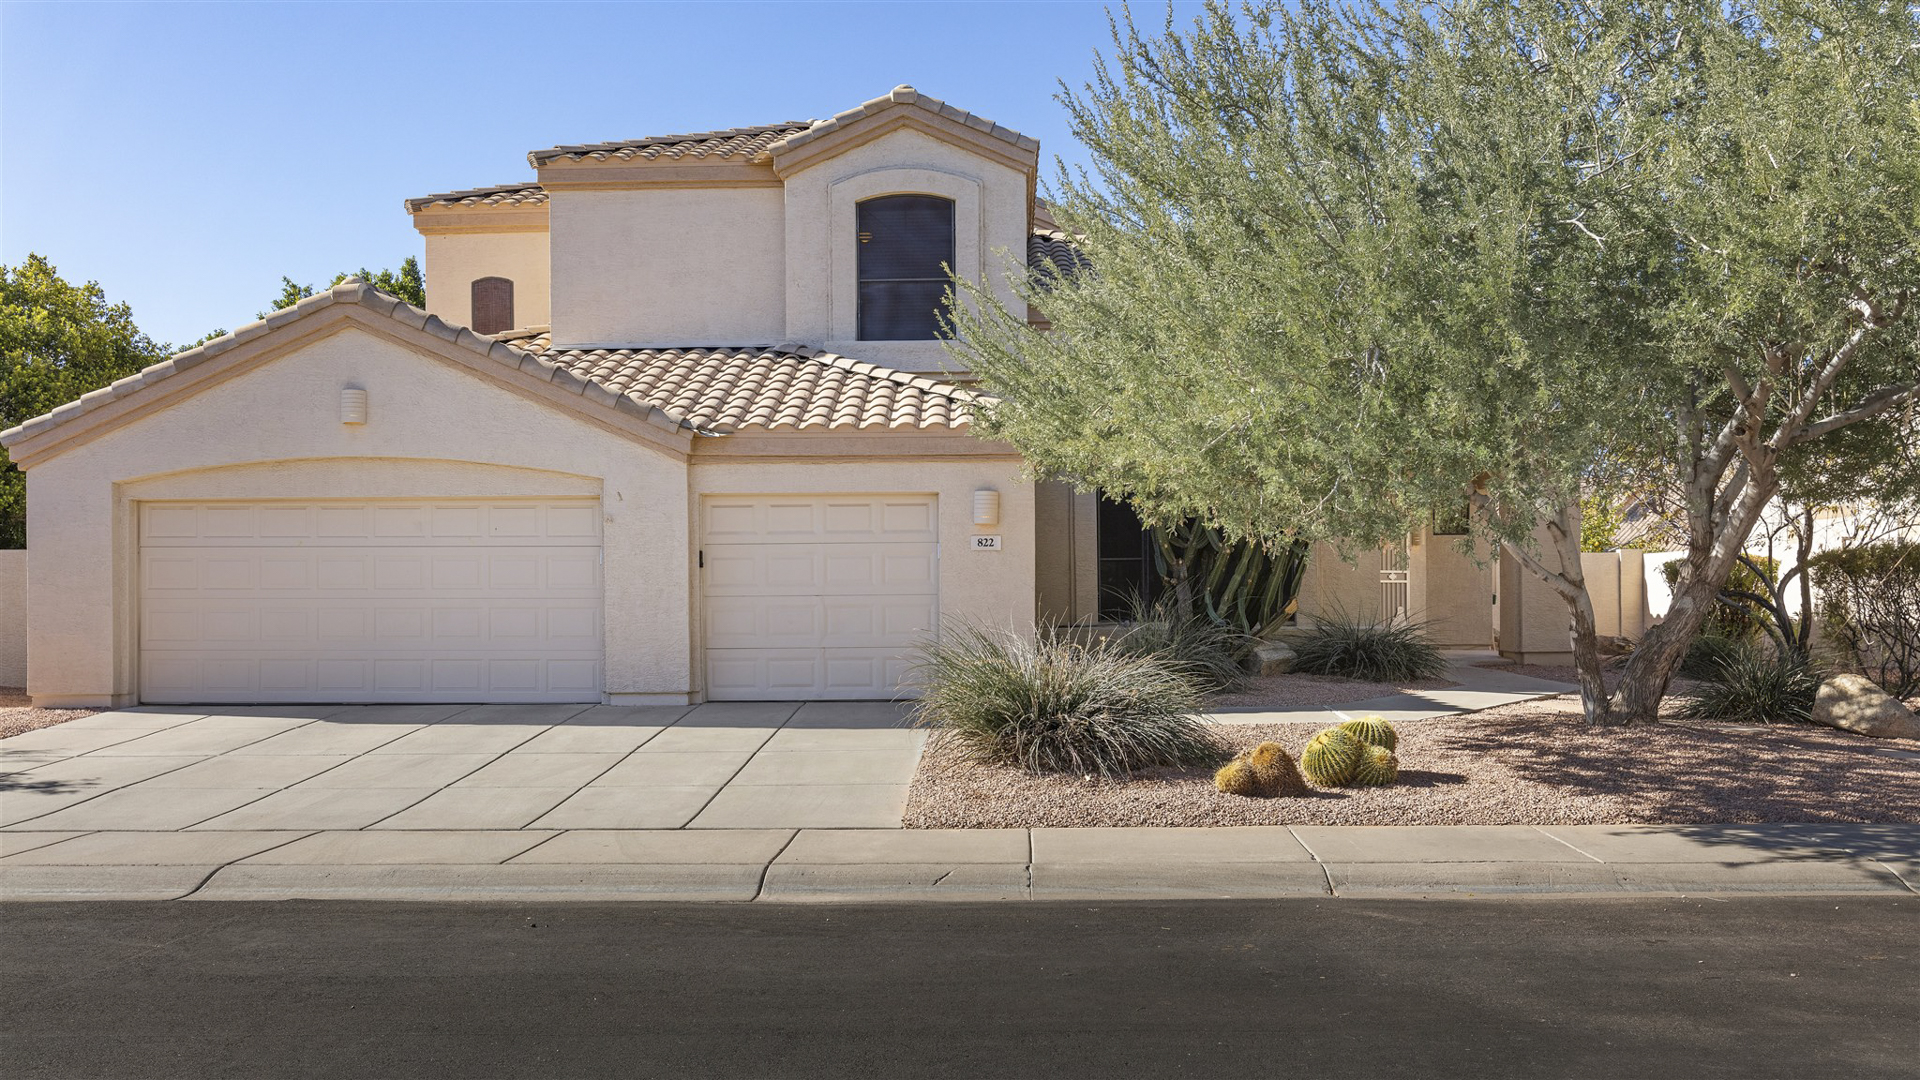 NEW LISTING - 822 N Butte Ave, Chandler, AZ 85226 - Park Promenade | Amy Jones Group